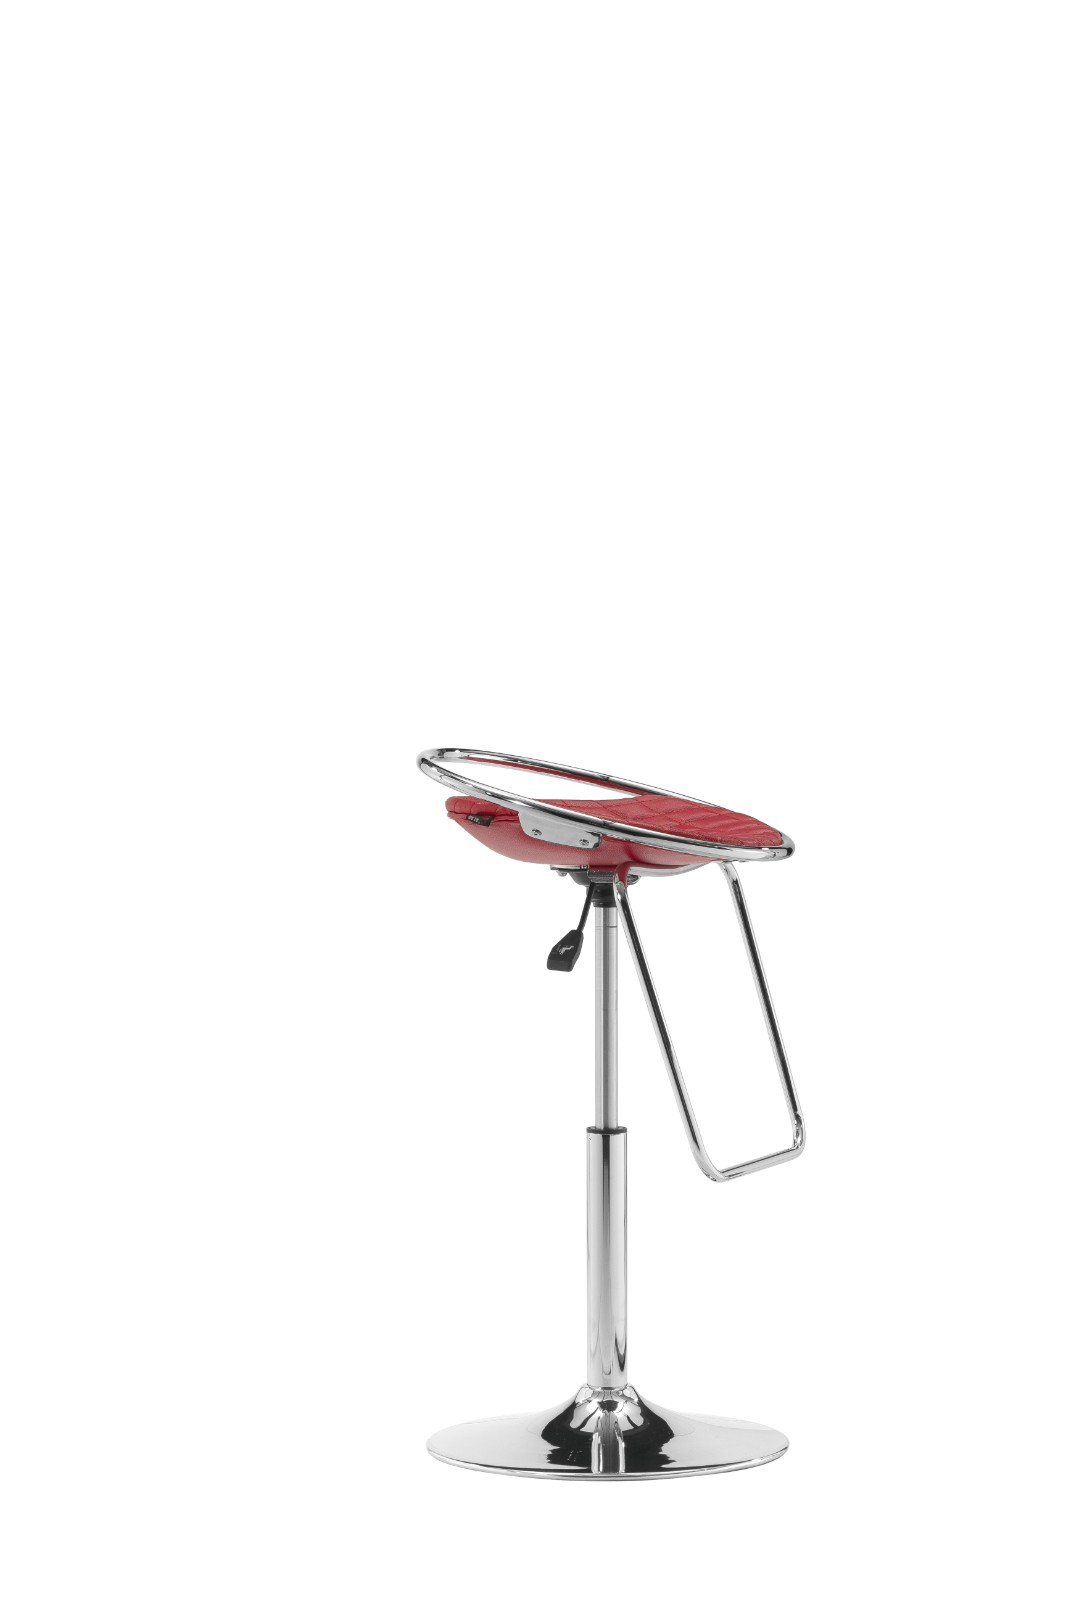 Bs 5280 Red Bar Stool Bar Furniture Furniture Penang Malaysia Bukit Mertajam Supplier Suppliers Supply Supplies